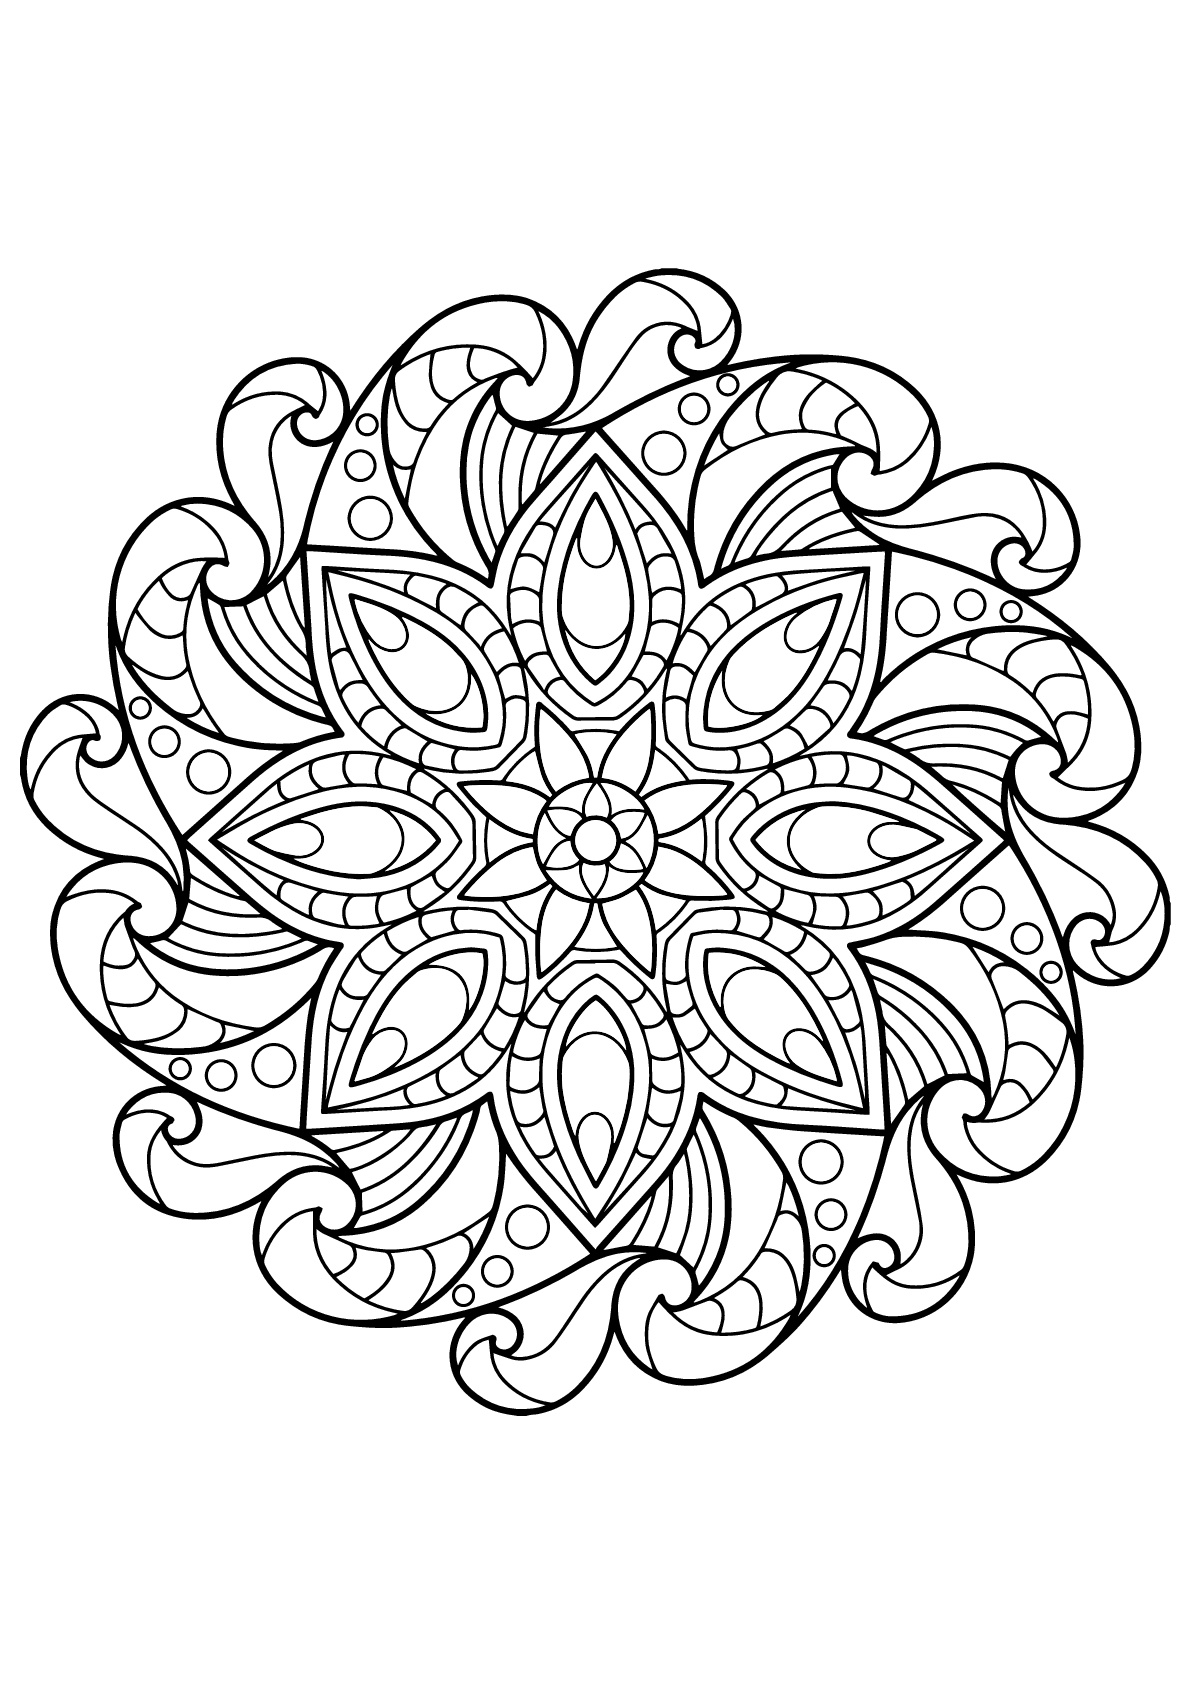 mandala adult coloring pages free clipart of a black and white adult coloring page adult pages mandala coloring